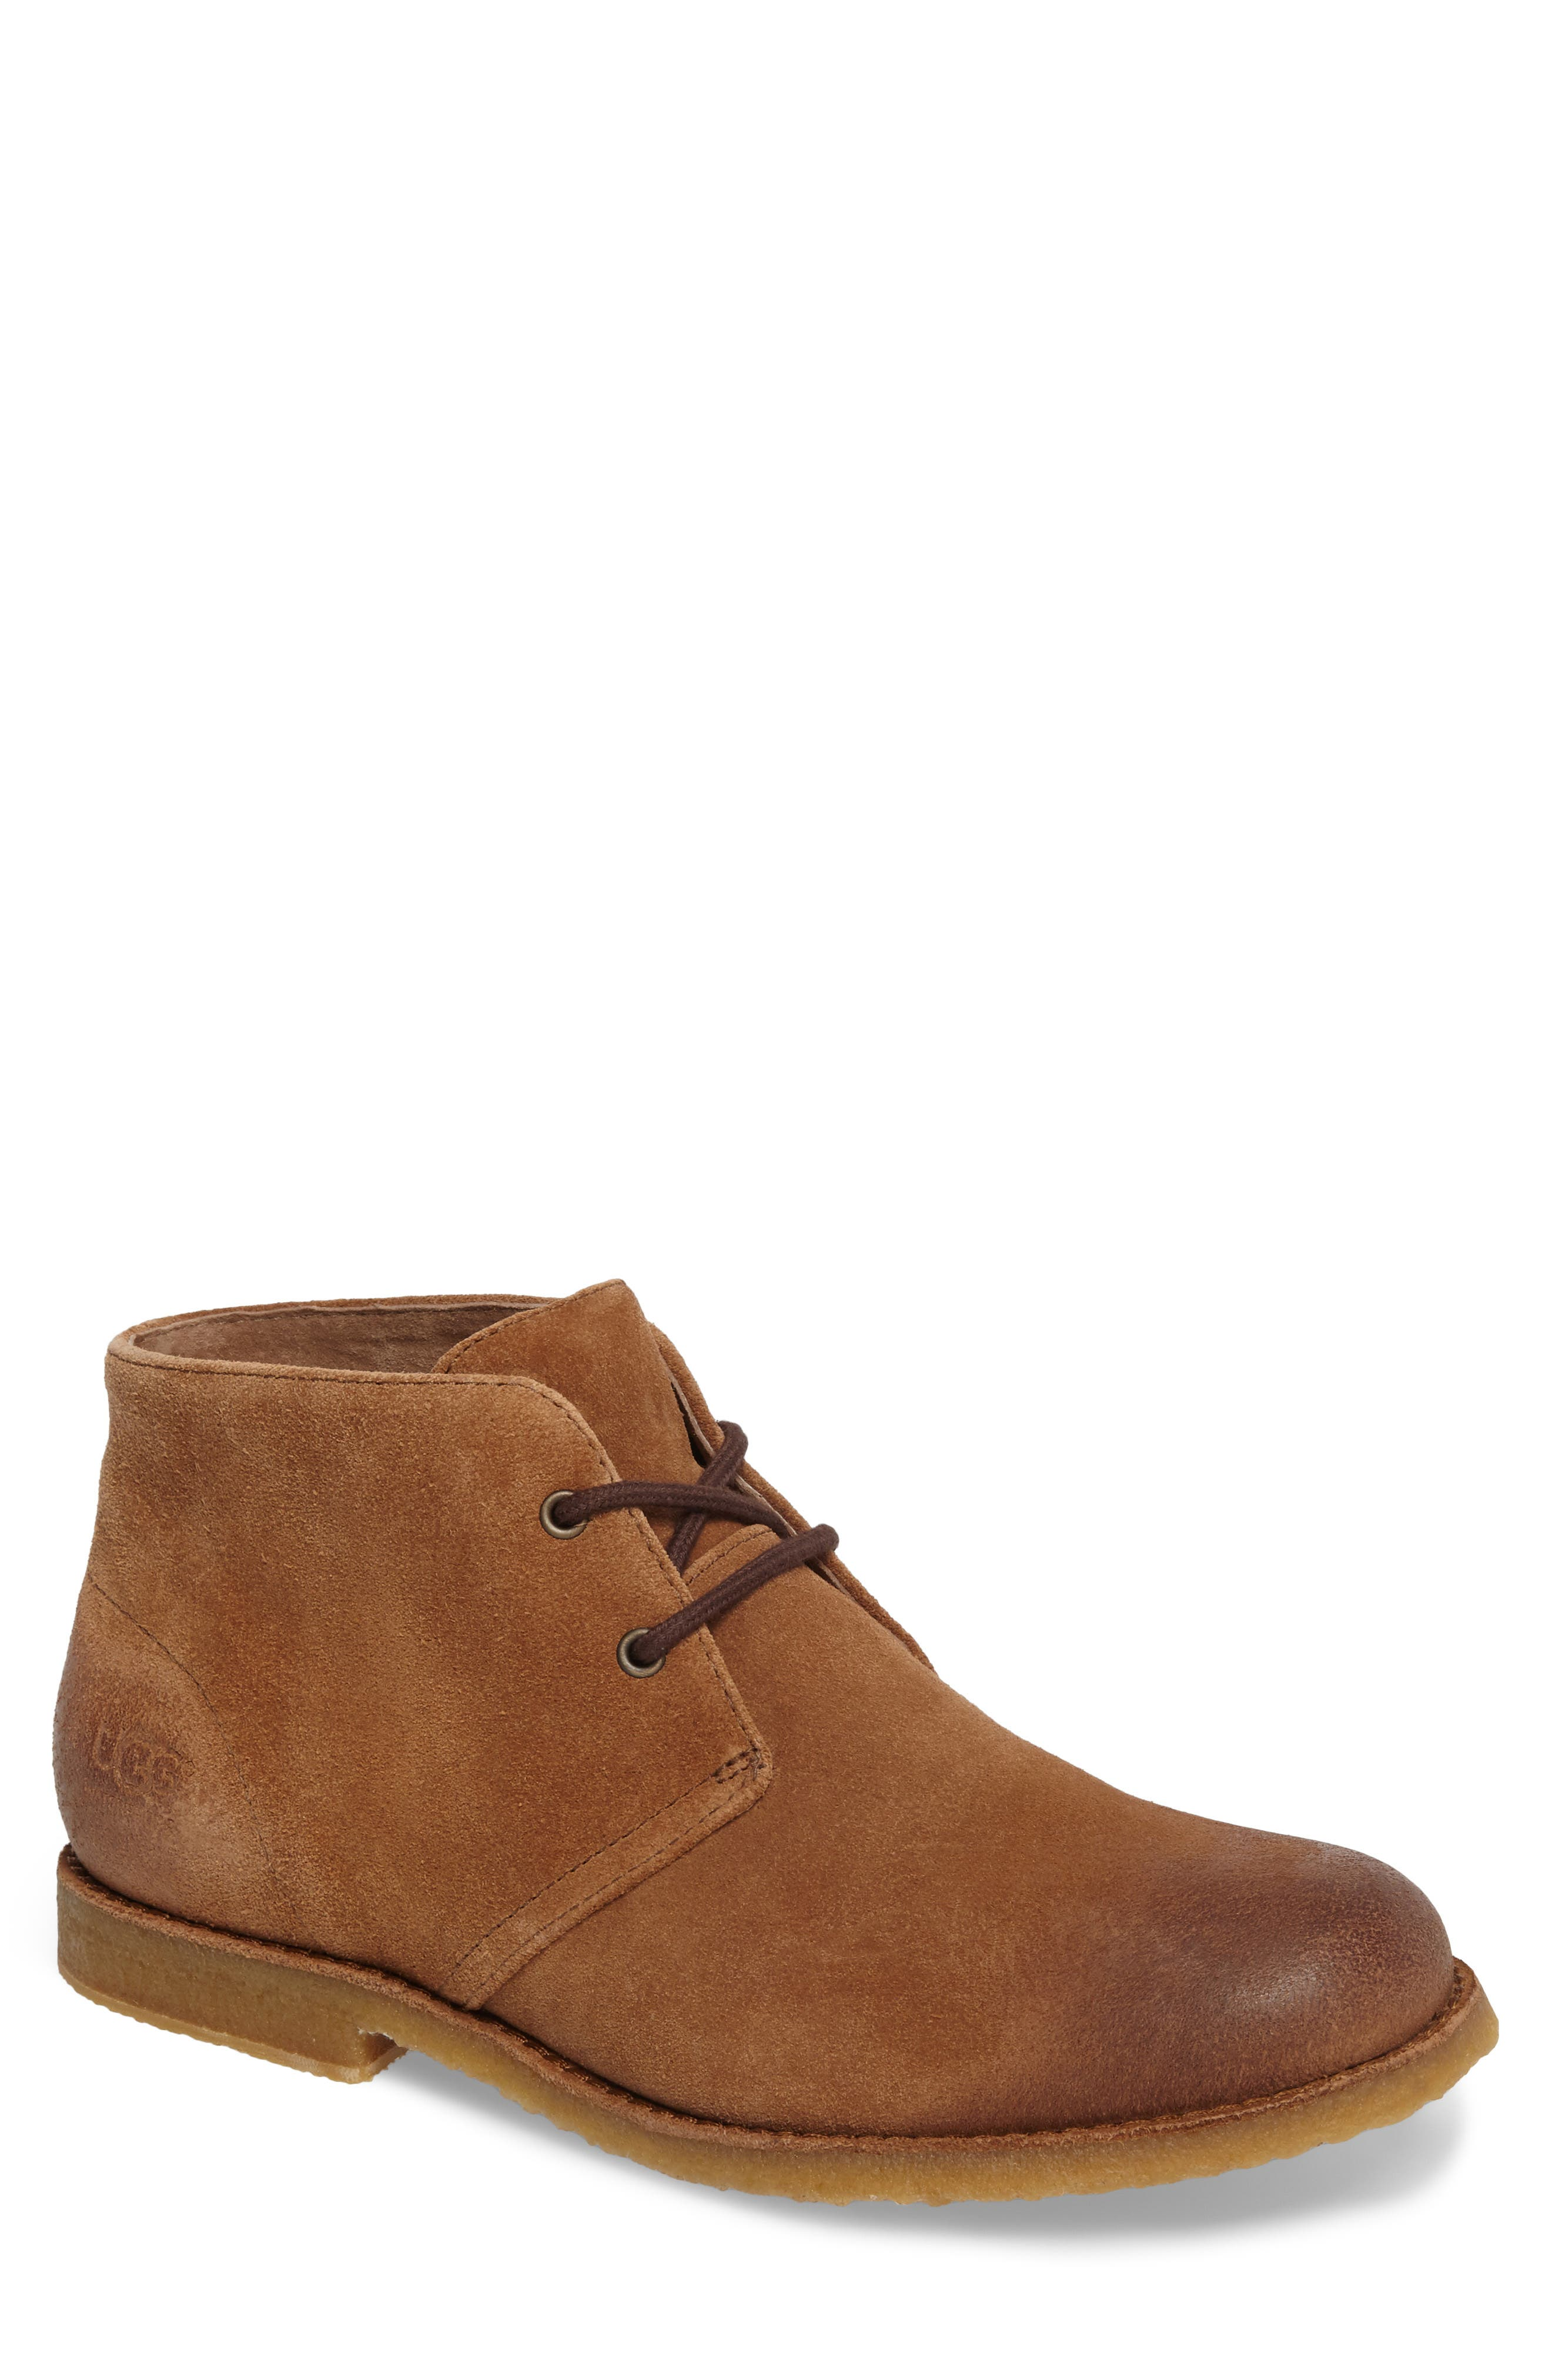 Alternate Image 1 Selected - UGG® Leighton Chukka Boot (Men)